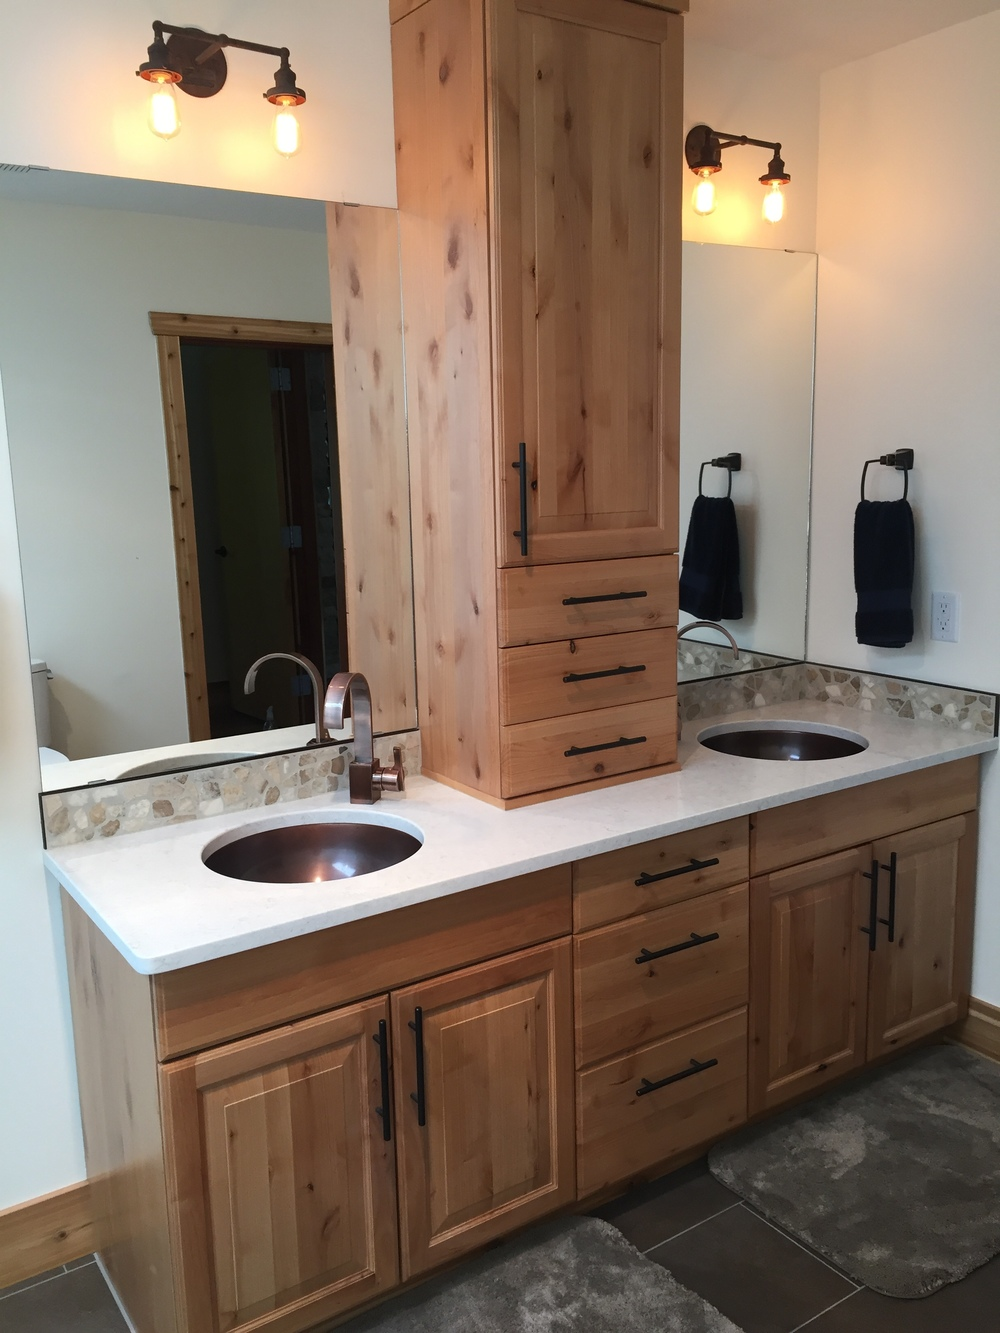 Custom double vanity, vintage inspired light fixtures, white quartz countertop.